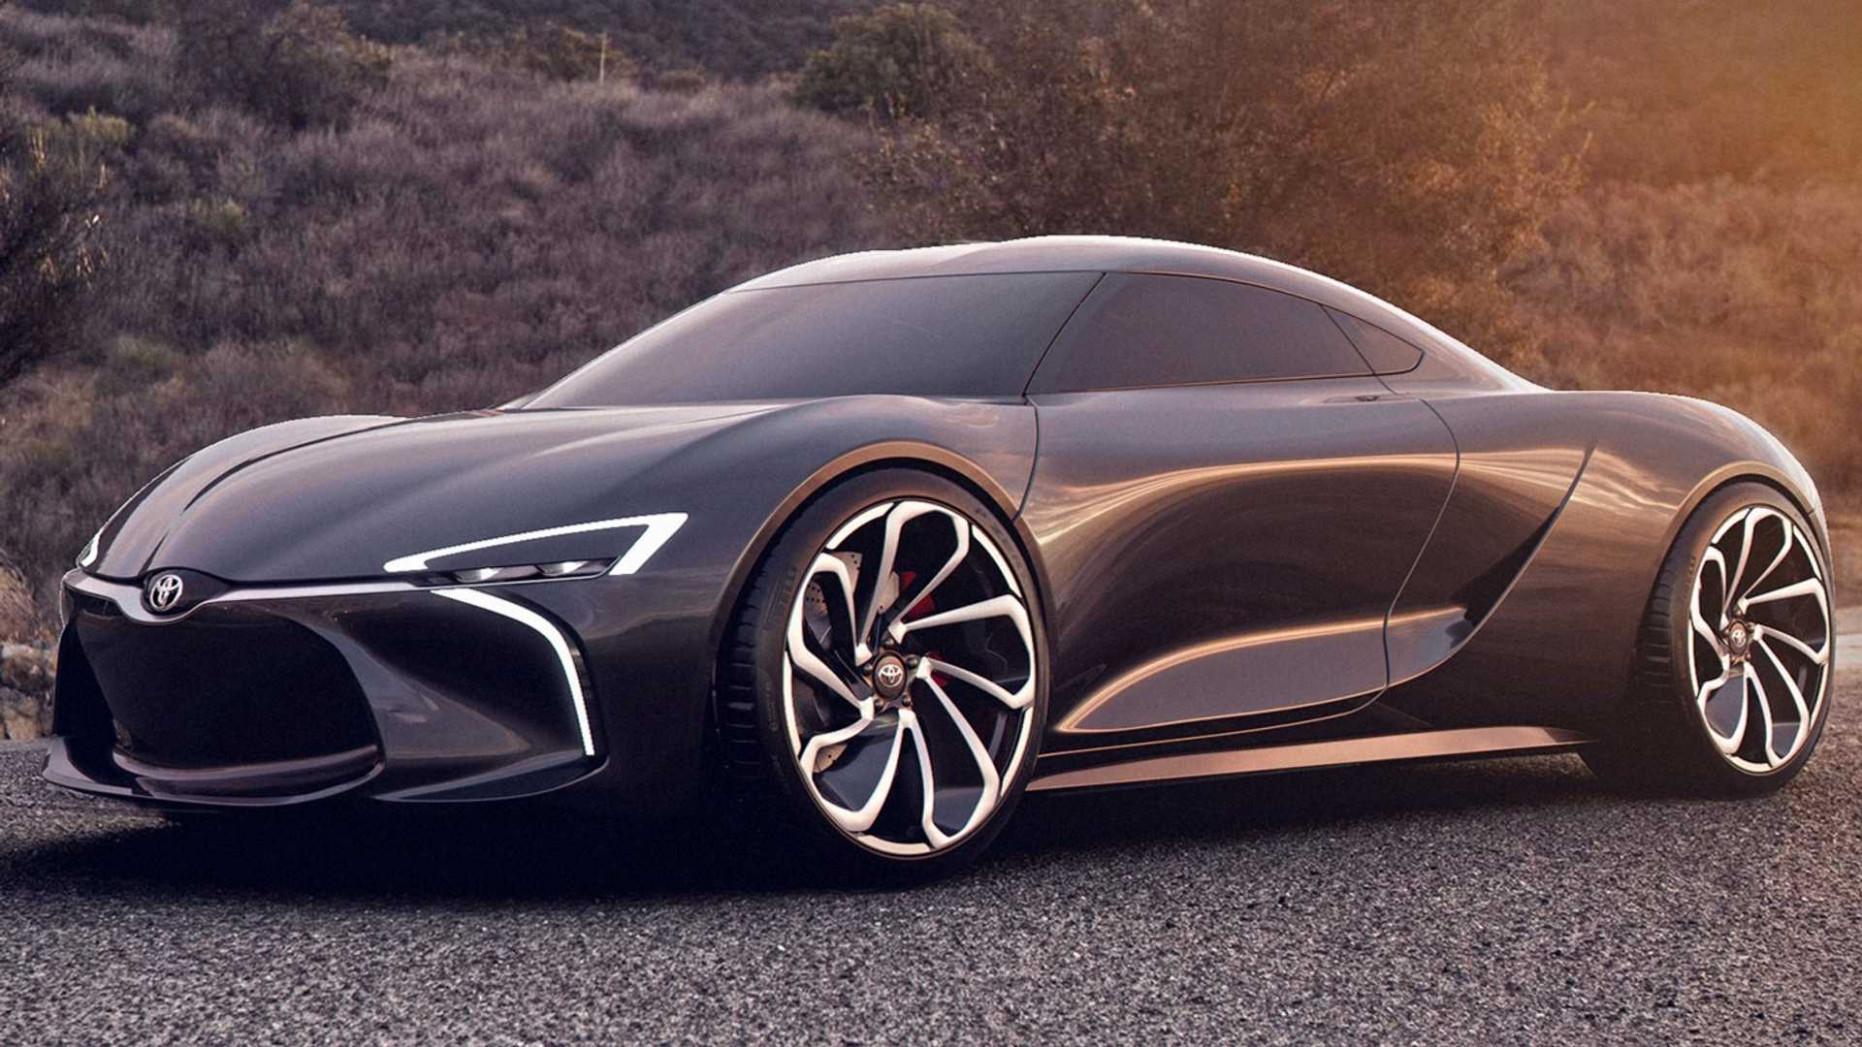 Redesign and Concept Pictures Of The 2022 Toyota Supra